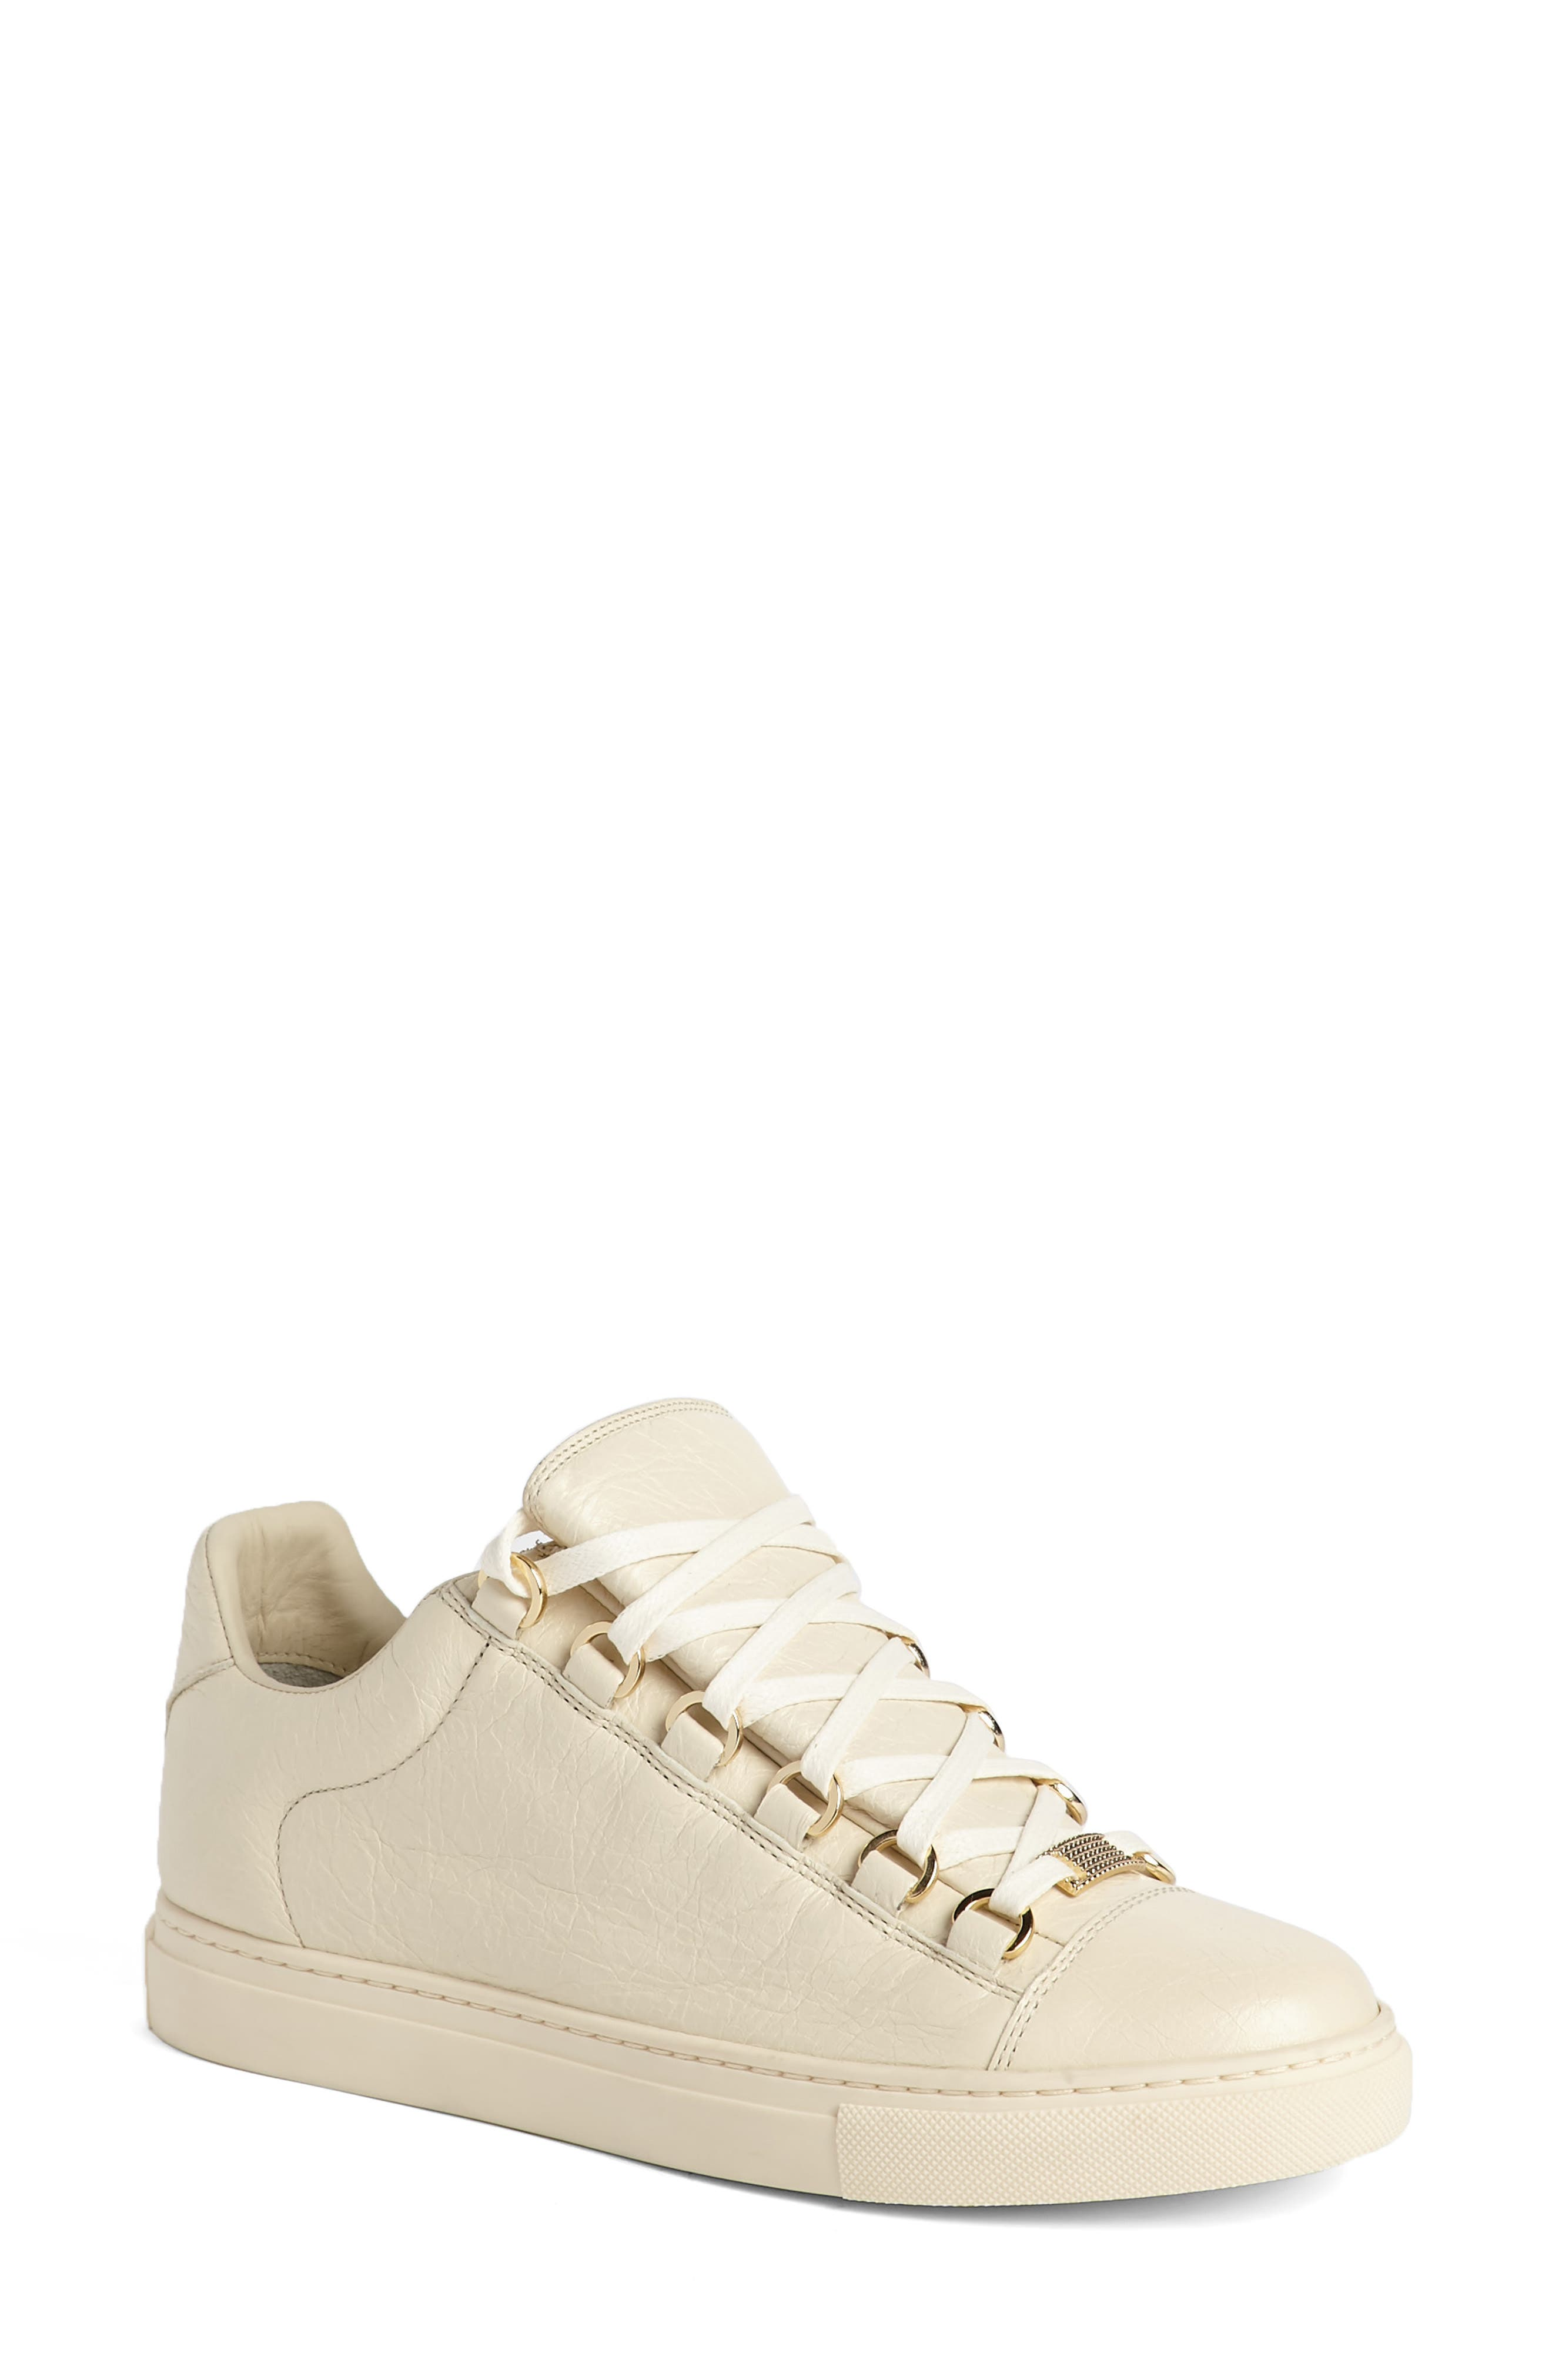 Low Top Sneaker,                             Main thumbnail 7, color,